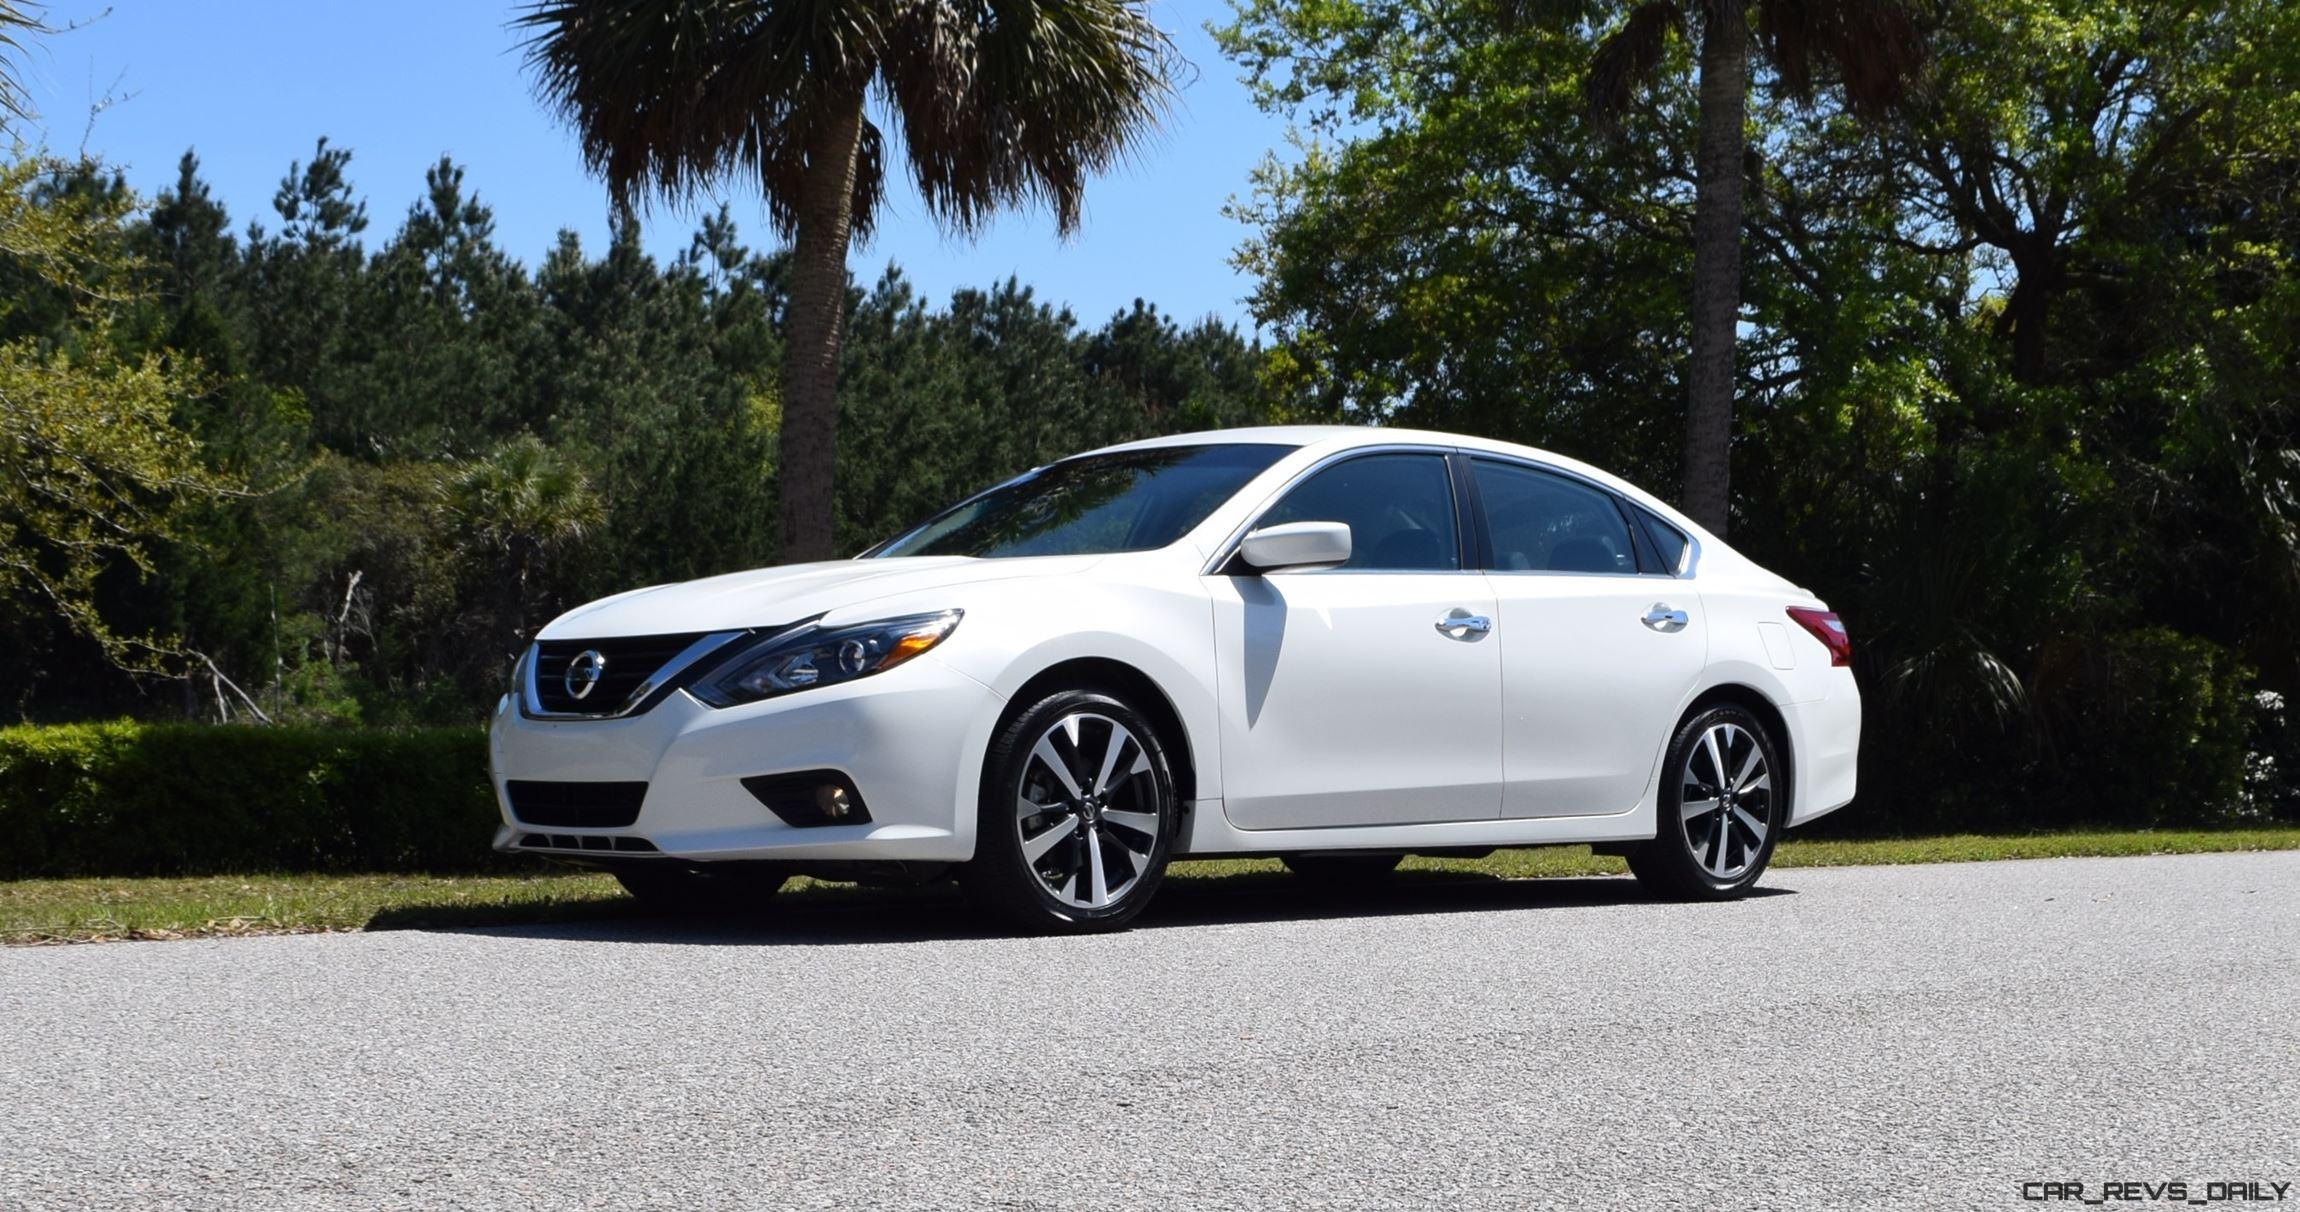 2016 Nissan Altima 2 5 Sr Hd Road Test Review Drive Video